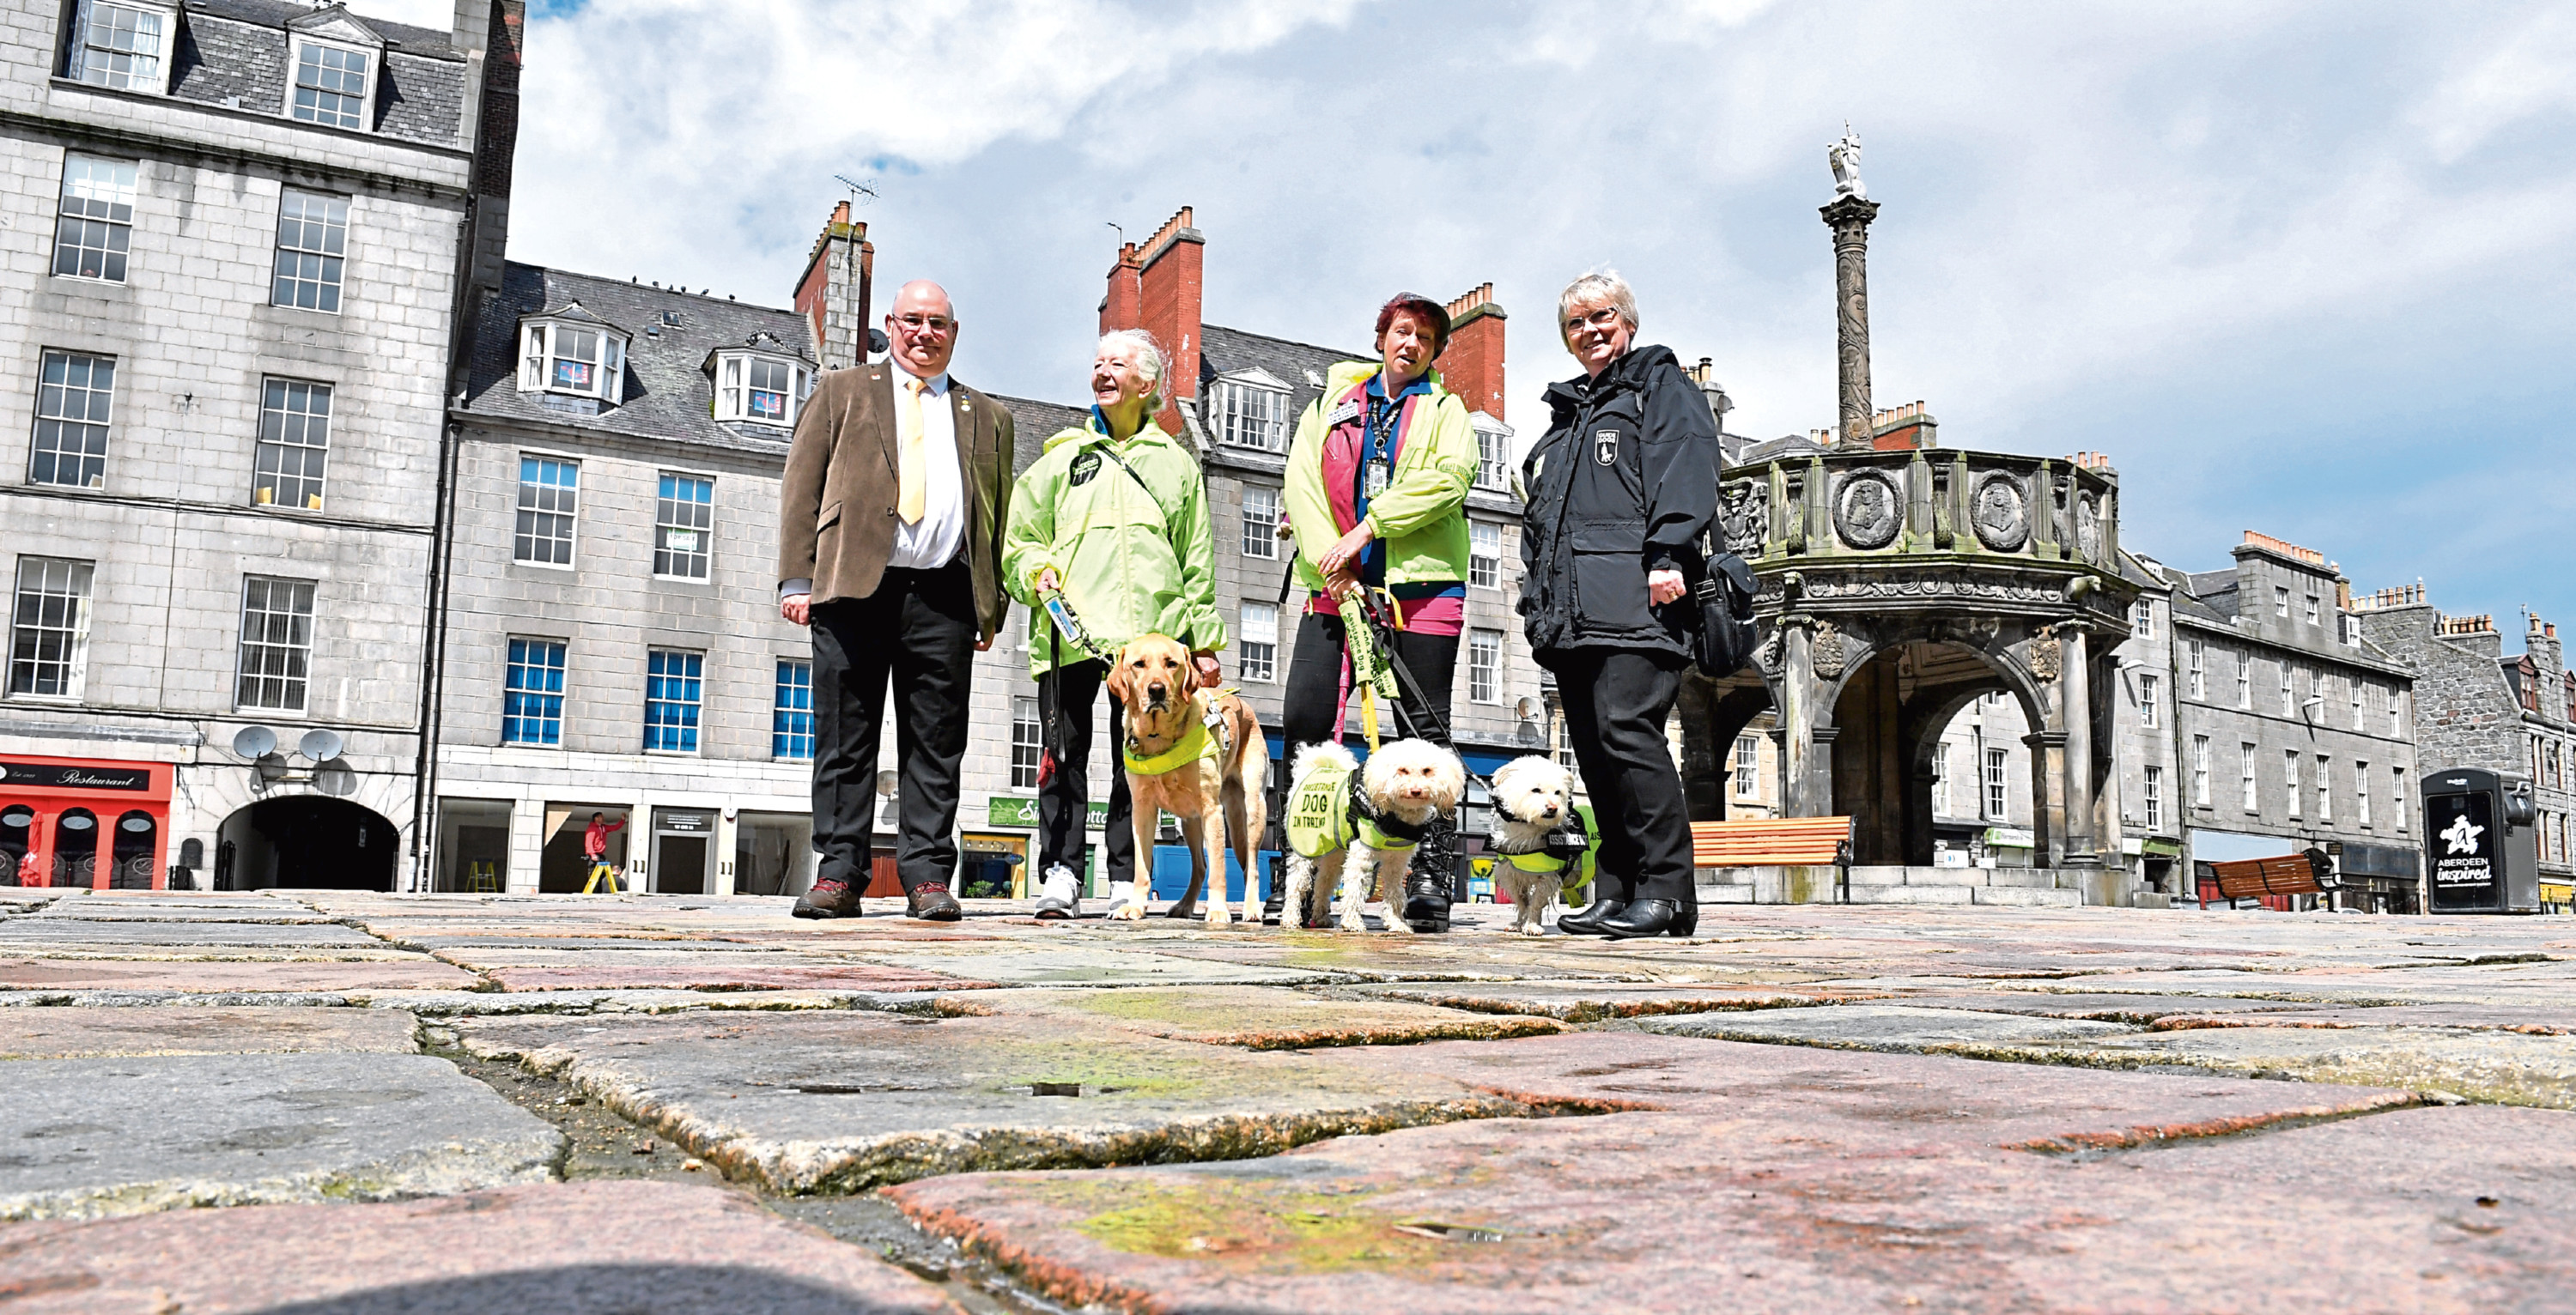 From left, Councillor Dell Henrickson, Mary Rasmussen with Vince, Ells McHaffie with Alfie and Blossom, and Pamela Munro at the Castlegate